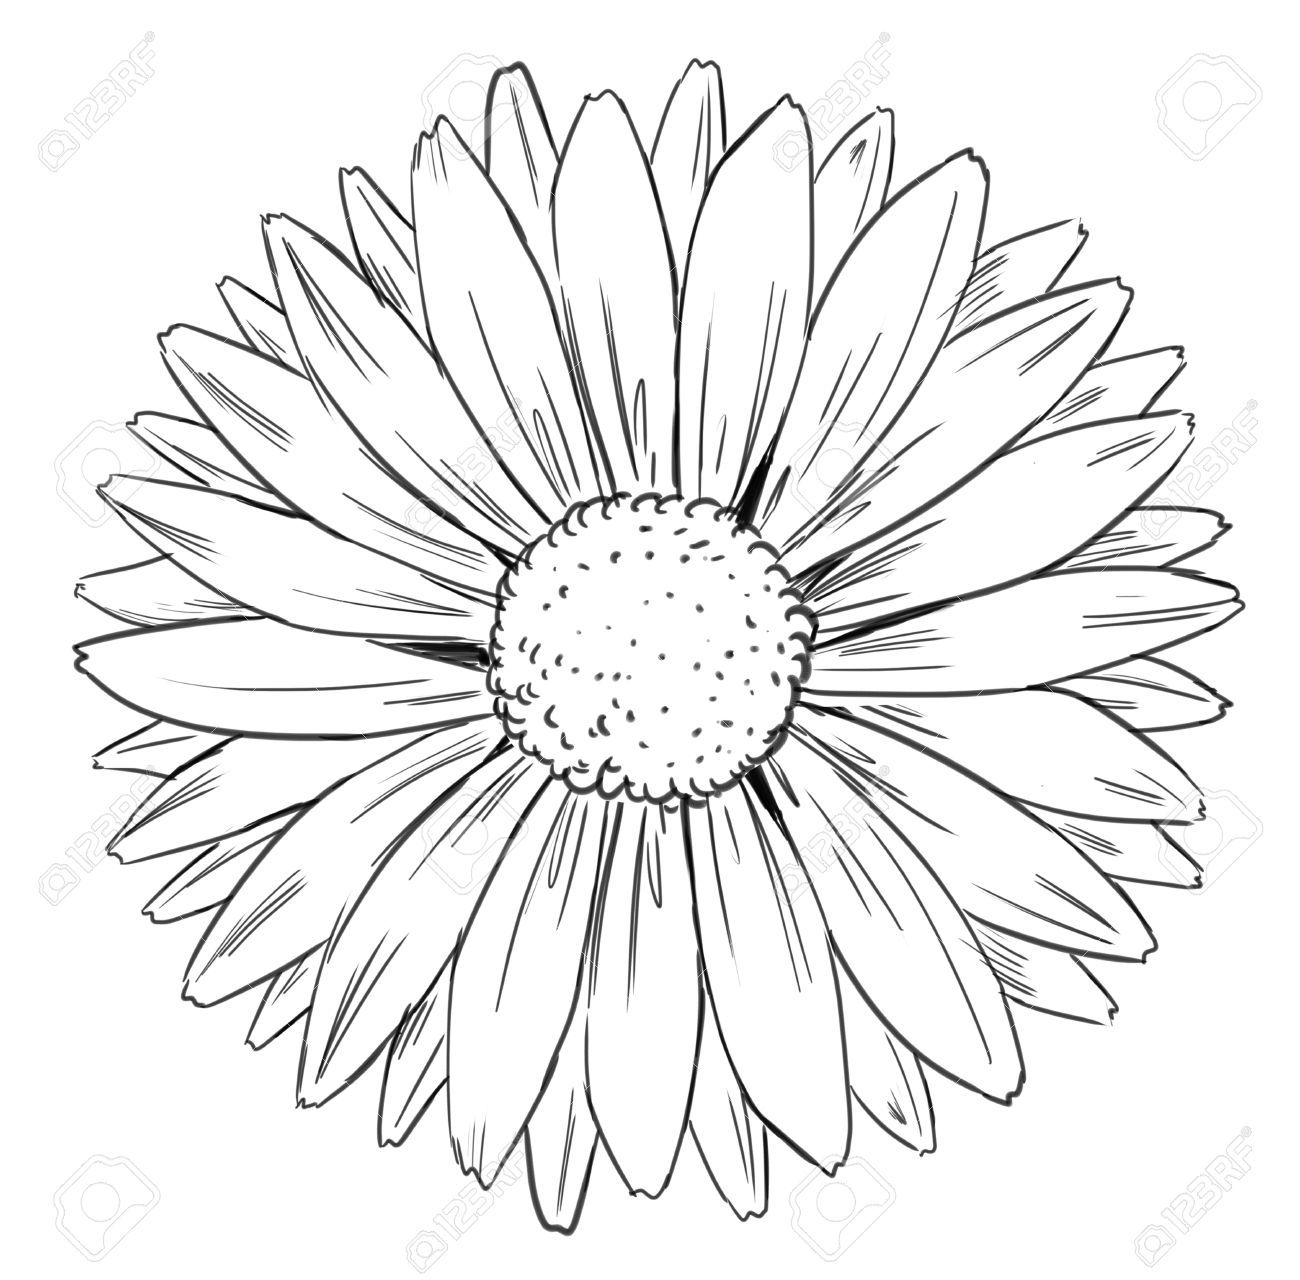 sunflower essay Essays - largest database of quality sample essays and research papers on the sunflower simon wiesenthal.